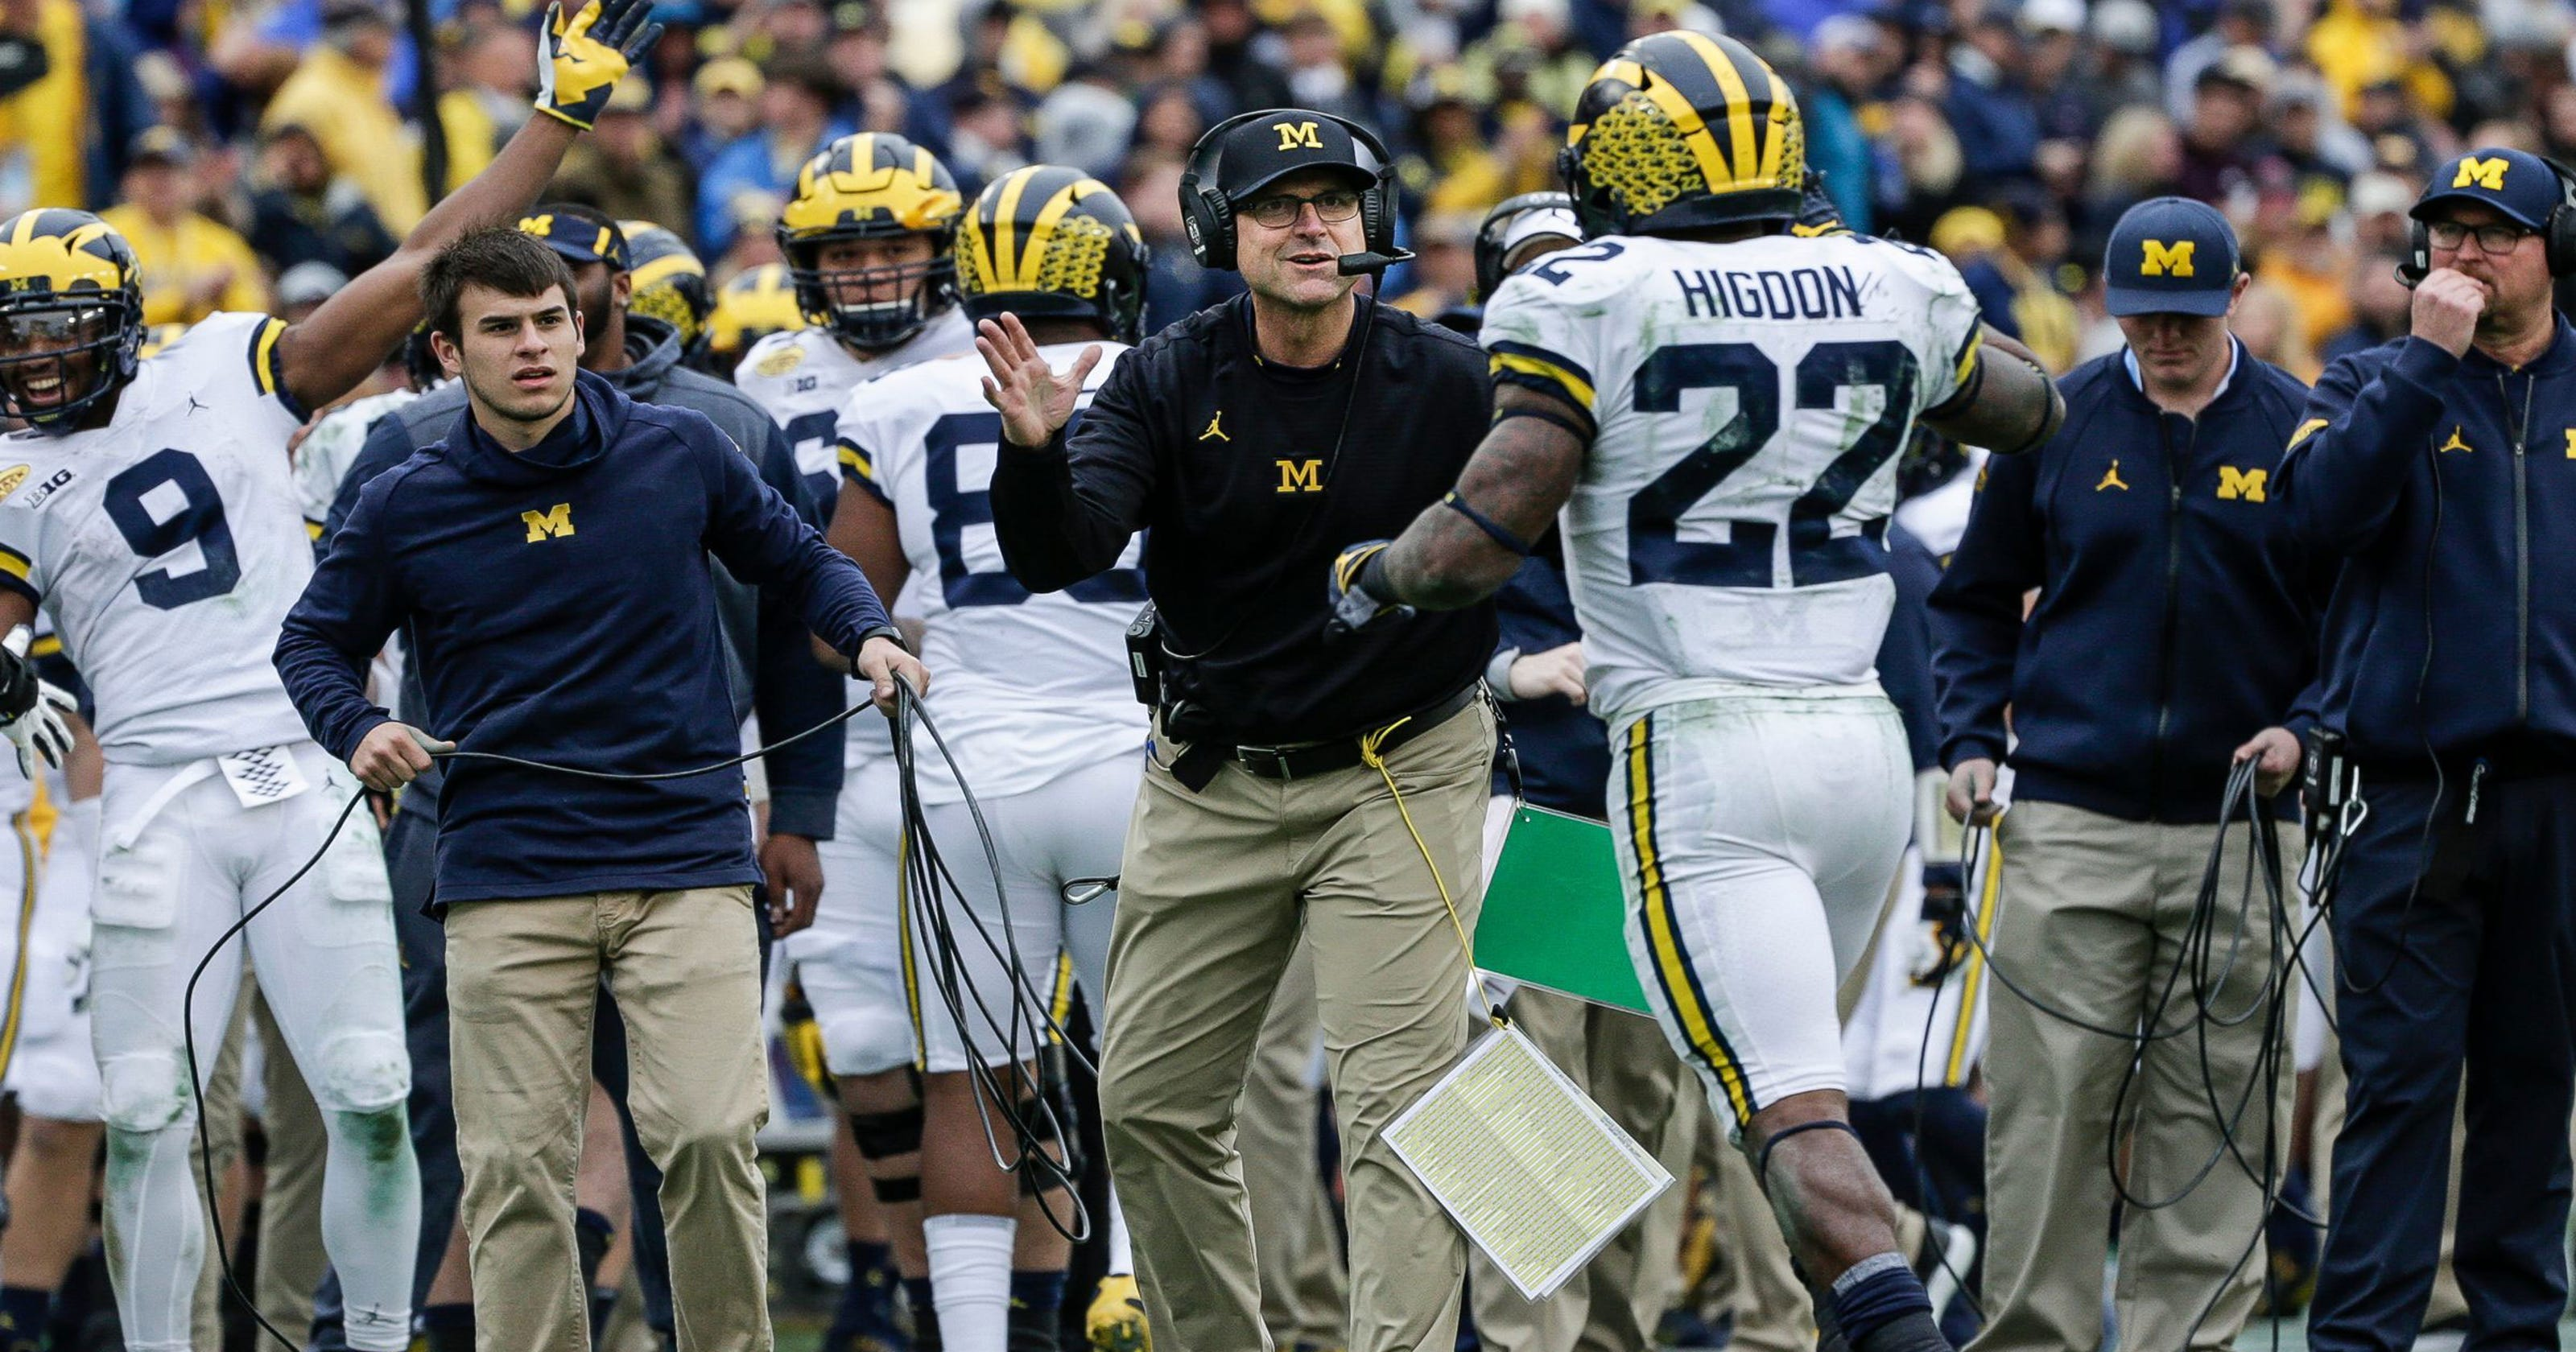 Bowl Schedule 2020-21 Michigan football buys out of series with Virginia Tech for 2020 21